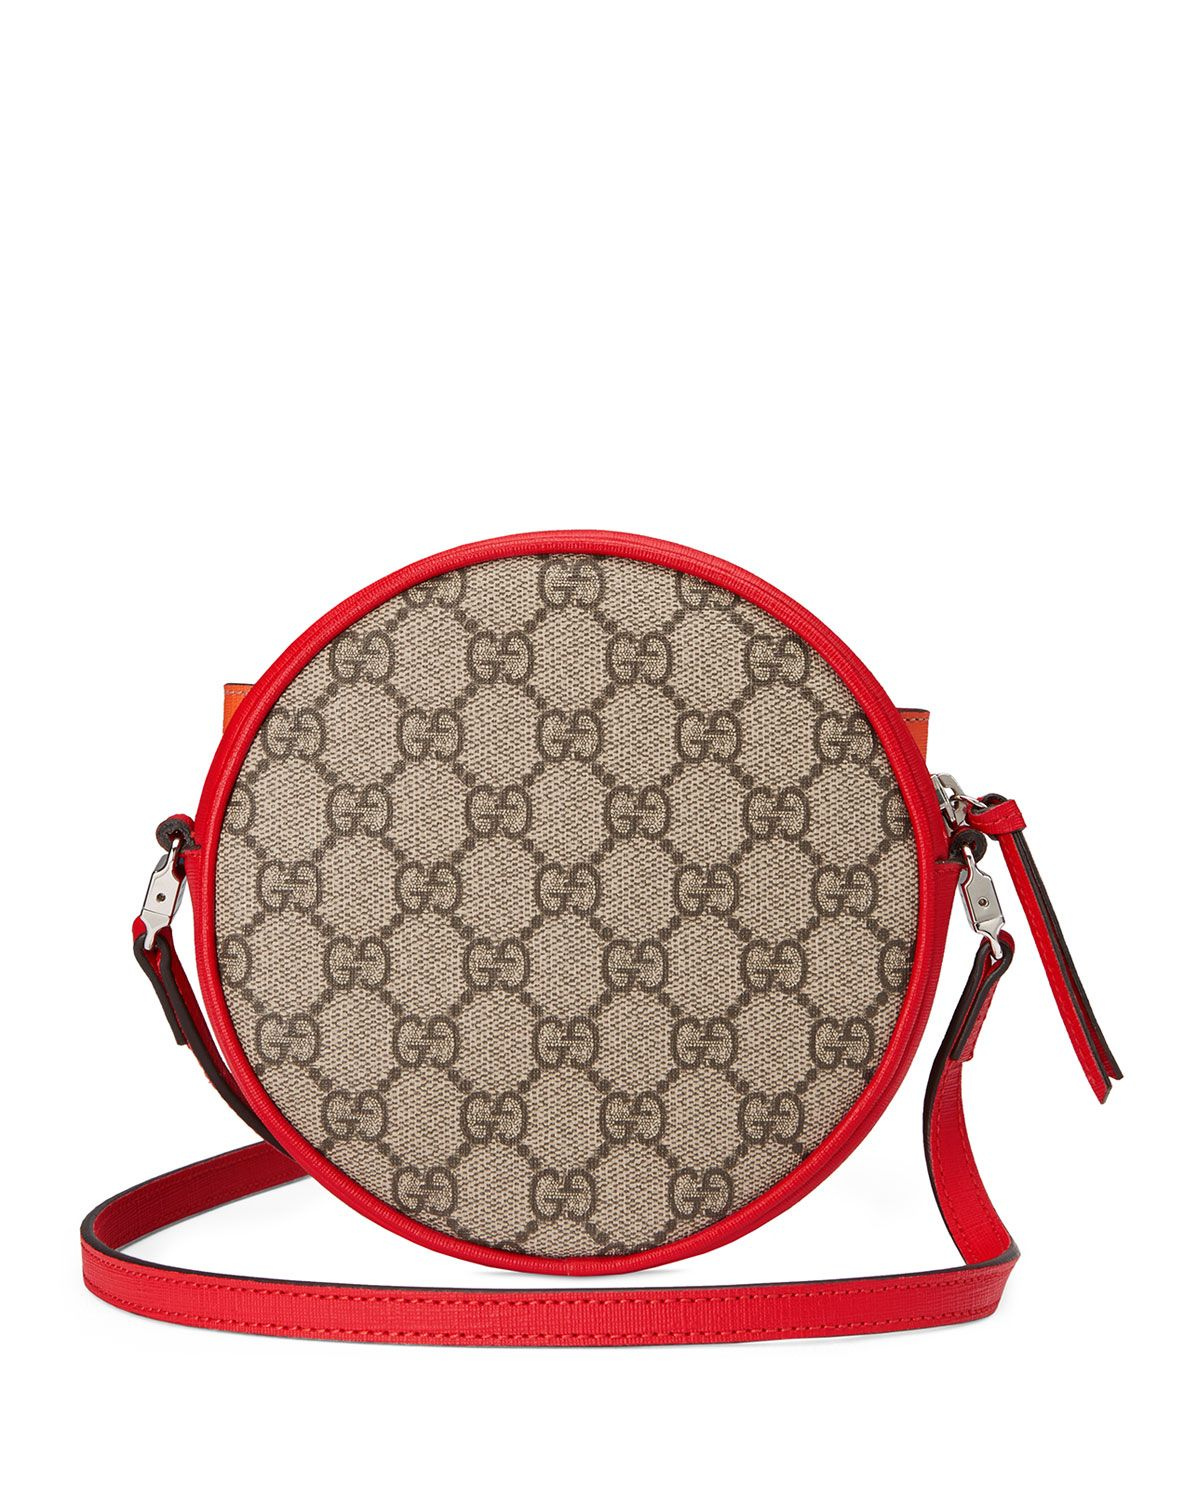 653561a24383 Gucci Girls' Circle GG Supreme Crossbody Bag w/ Rainbow Bow | Neiman Marcus